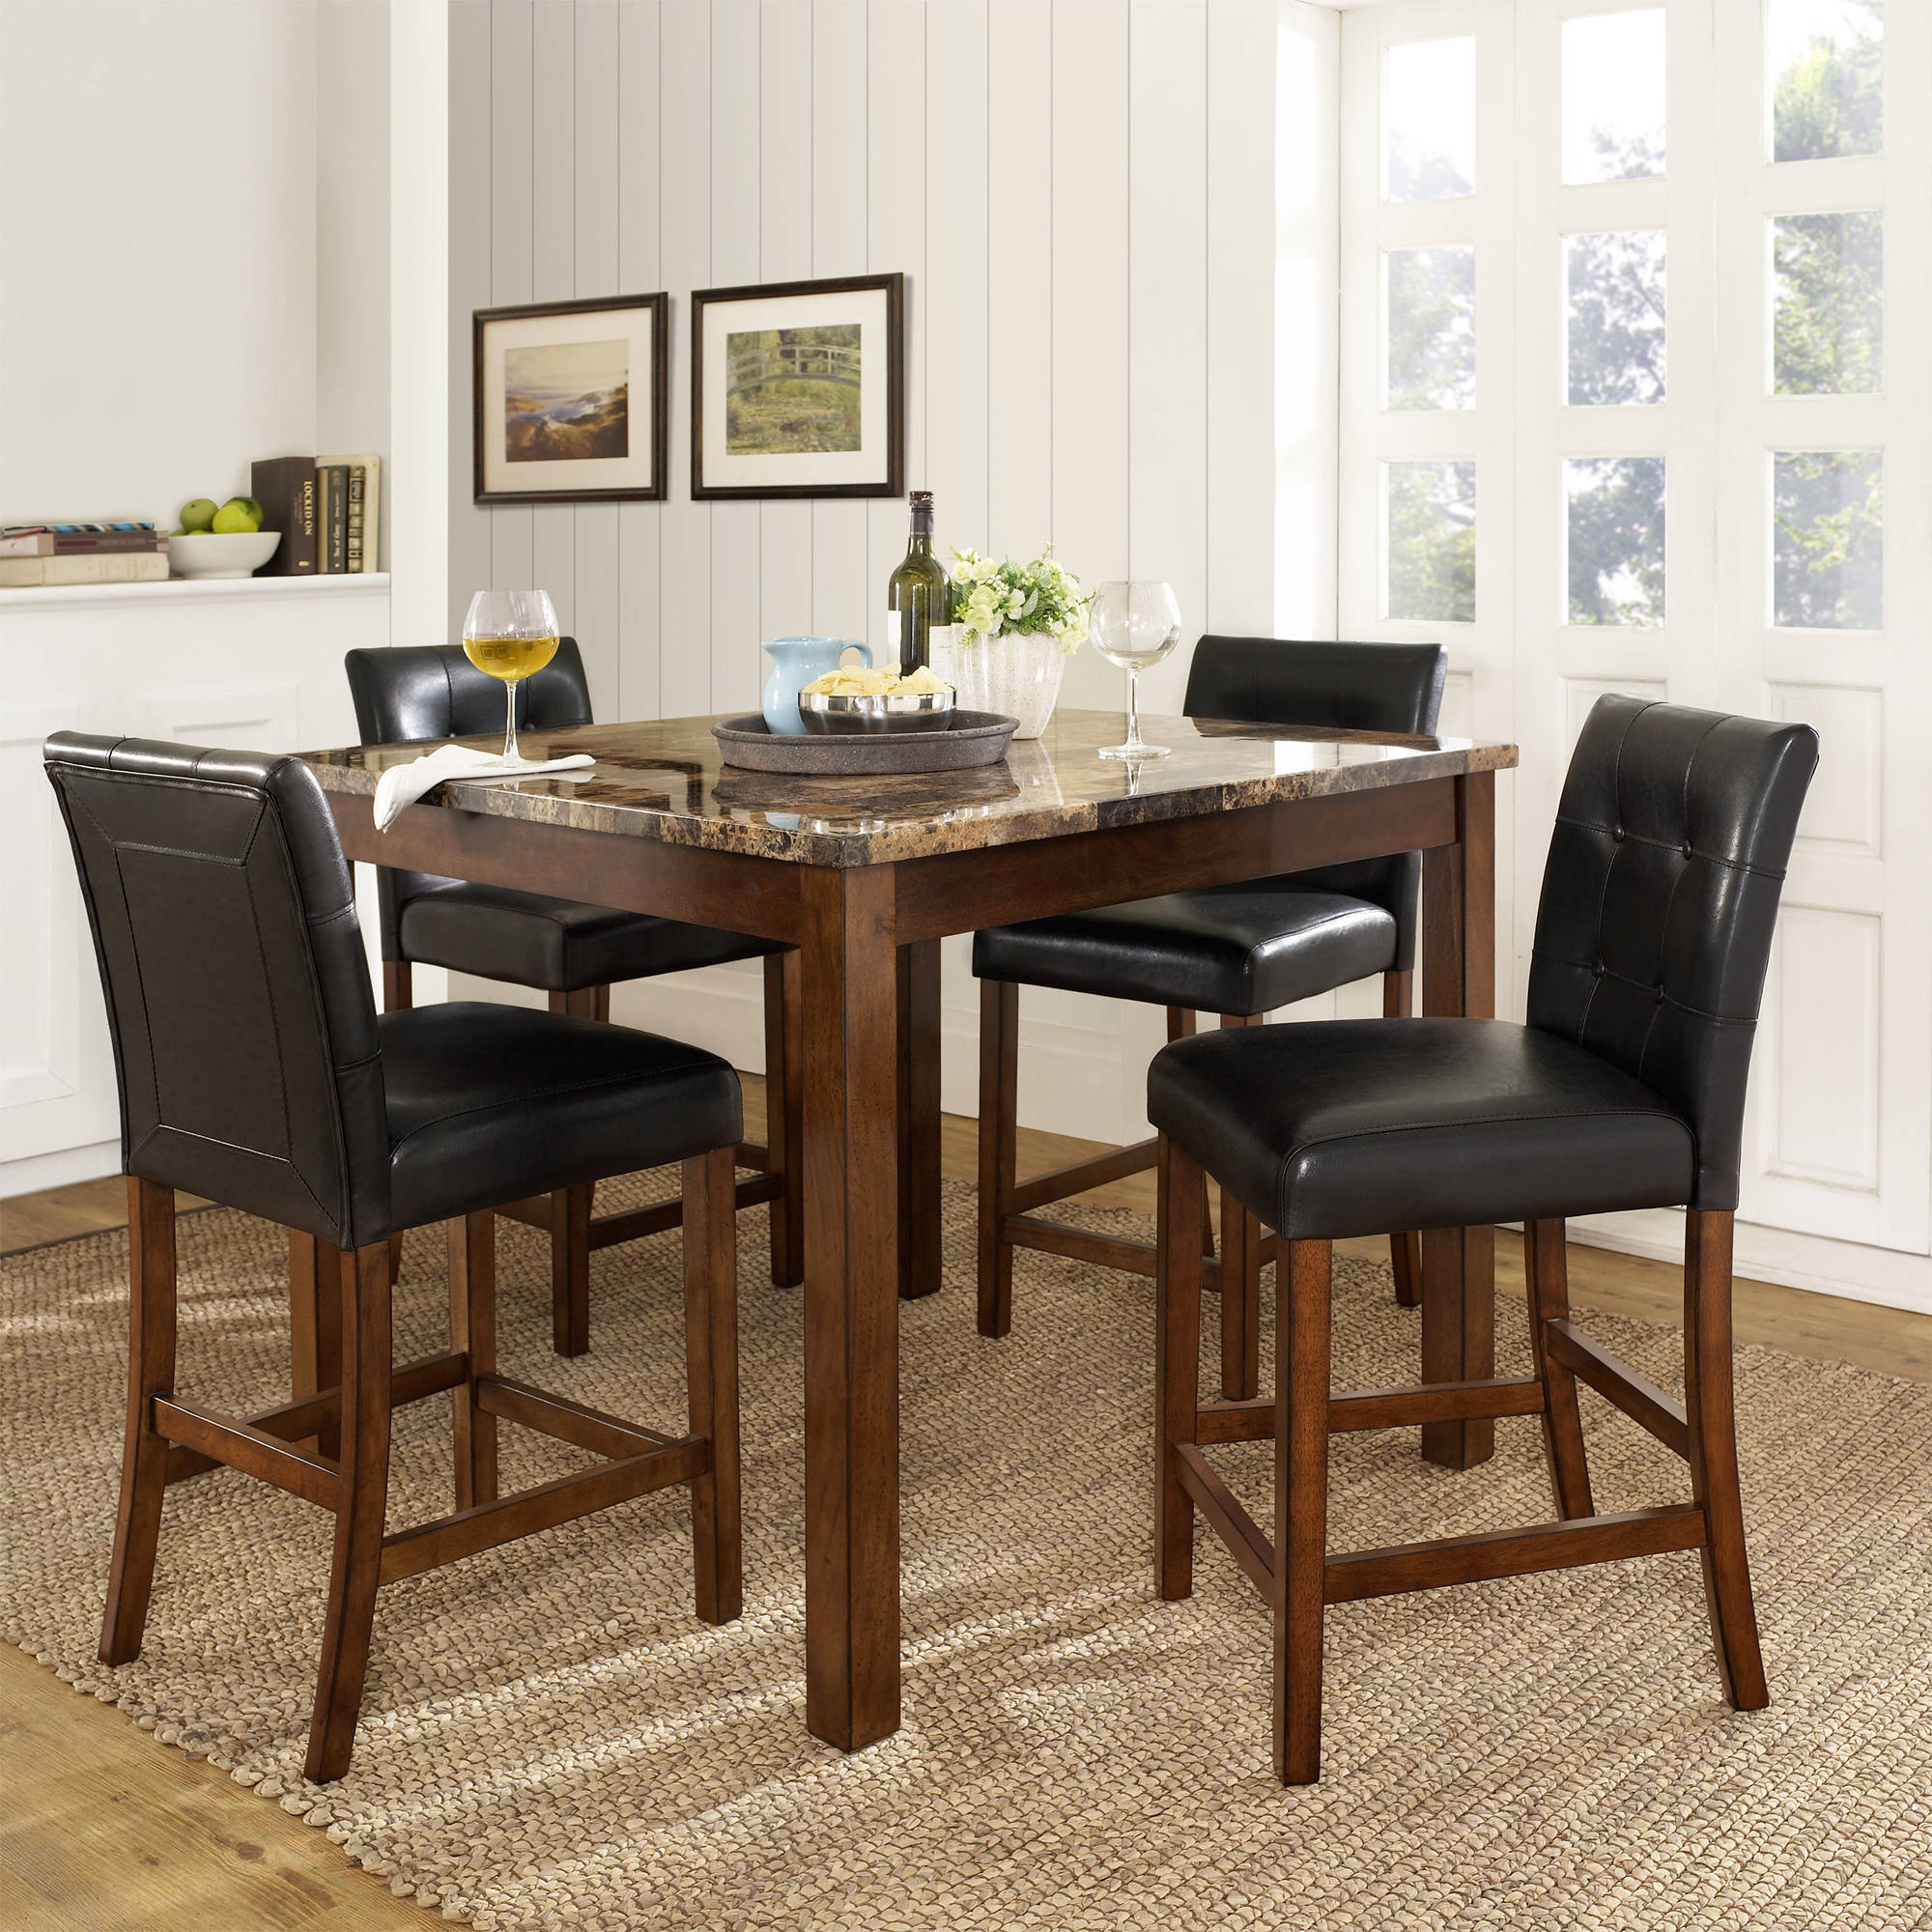 5 Piece Dining Sets Throughout Recent Dorel Living Andover 5 Piece Counter Height Dining Set, Multiple (#4 of 20)